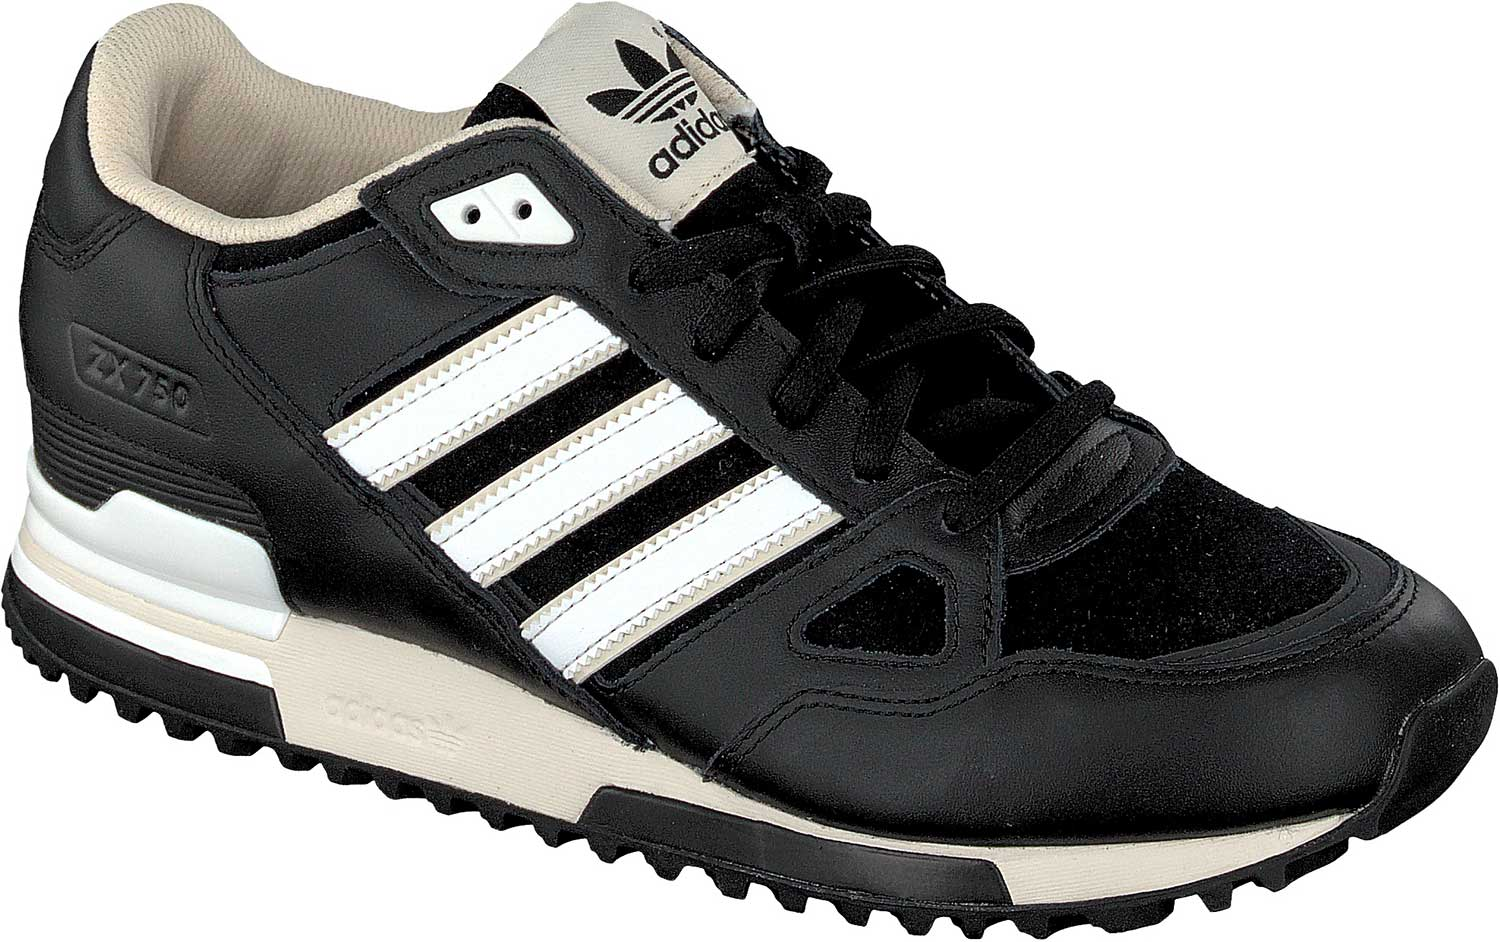 adidas zx 750 racer adi star retro 80er sneaker turnschuhe. Black Bedroom Furniture Sets. Home Design Ideas